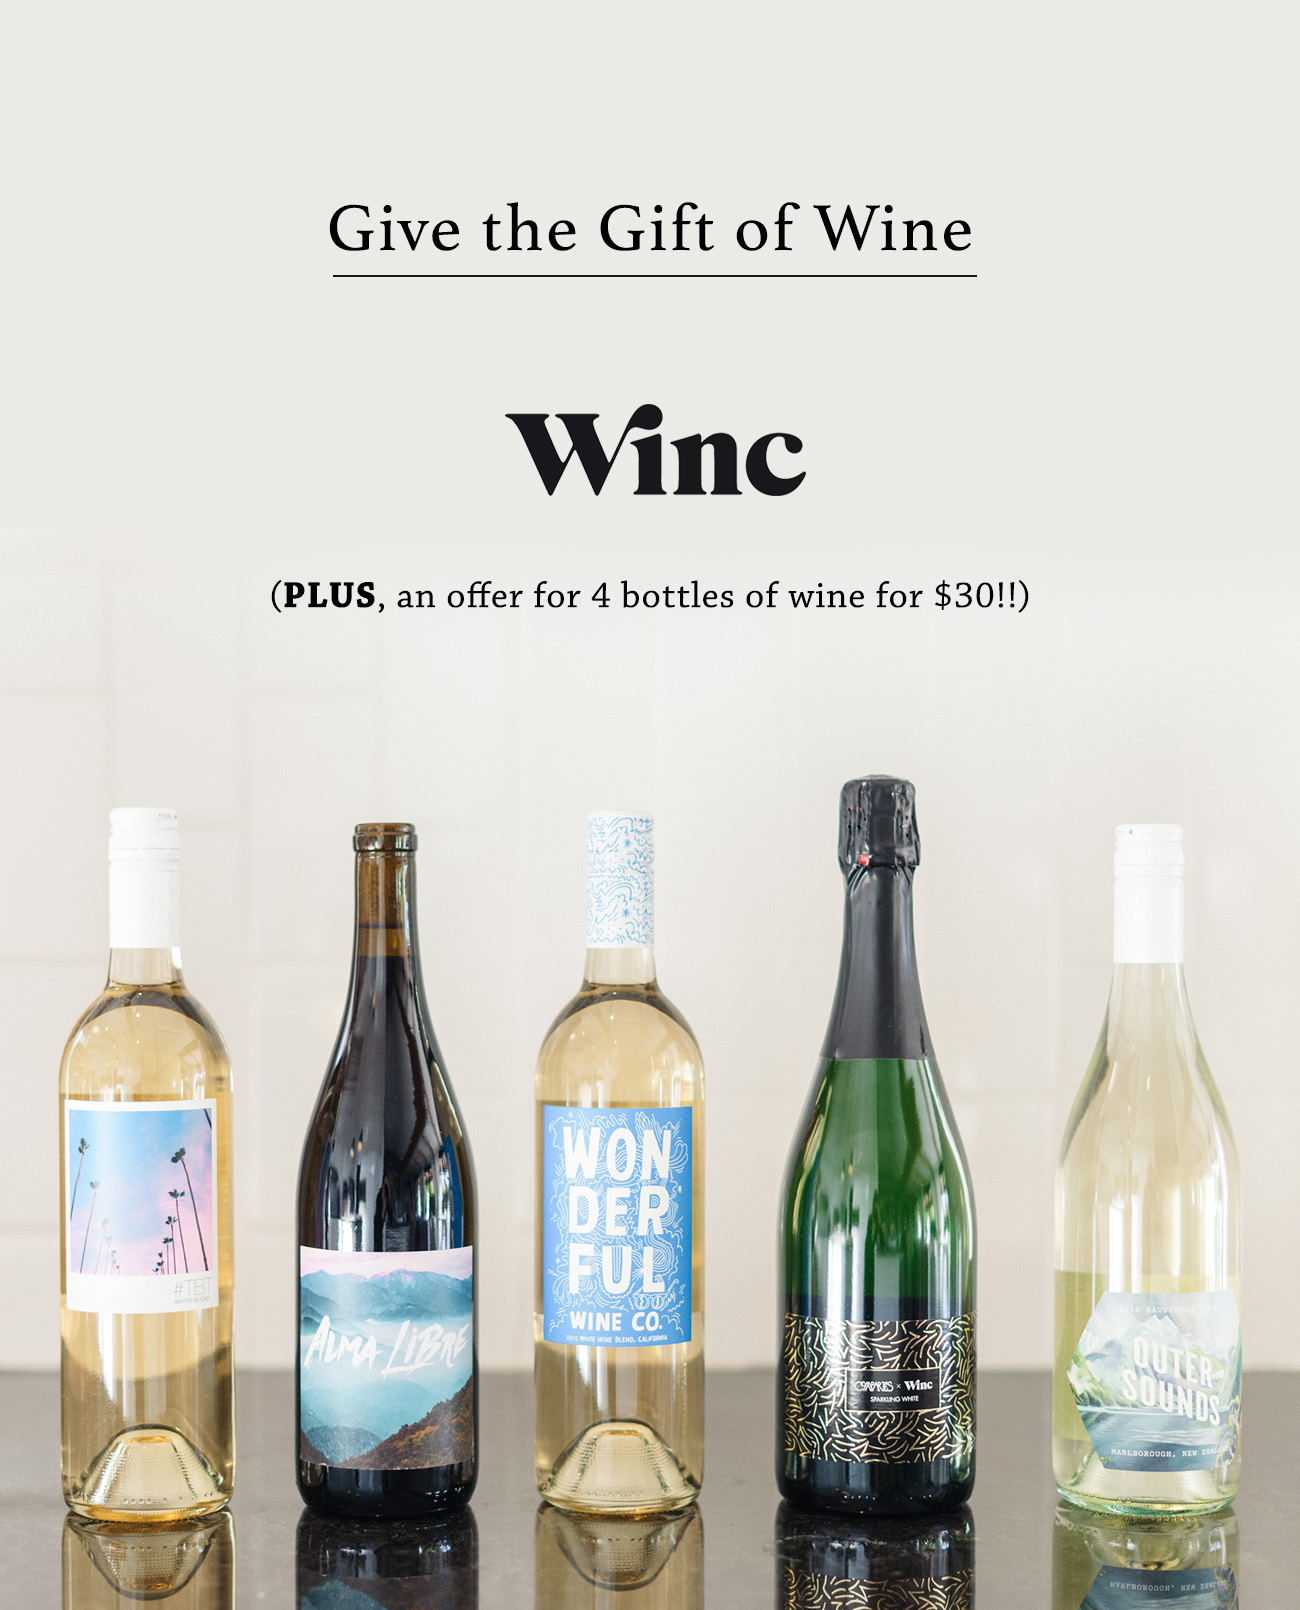 Give the Gift of Wine with Winc - Green Wedding Shoes